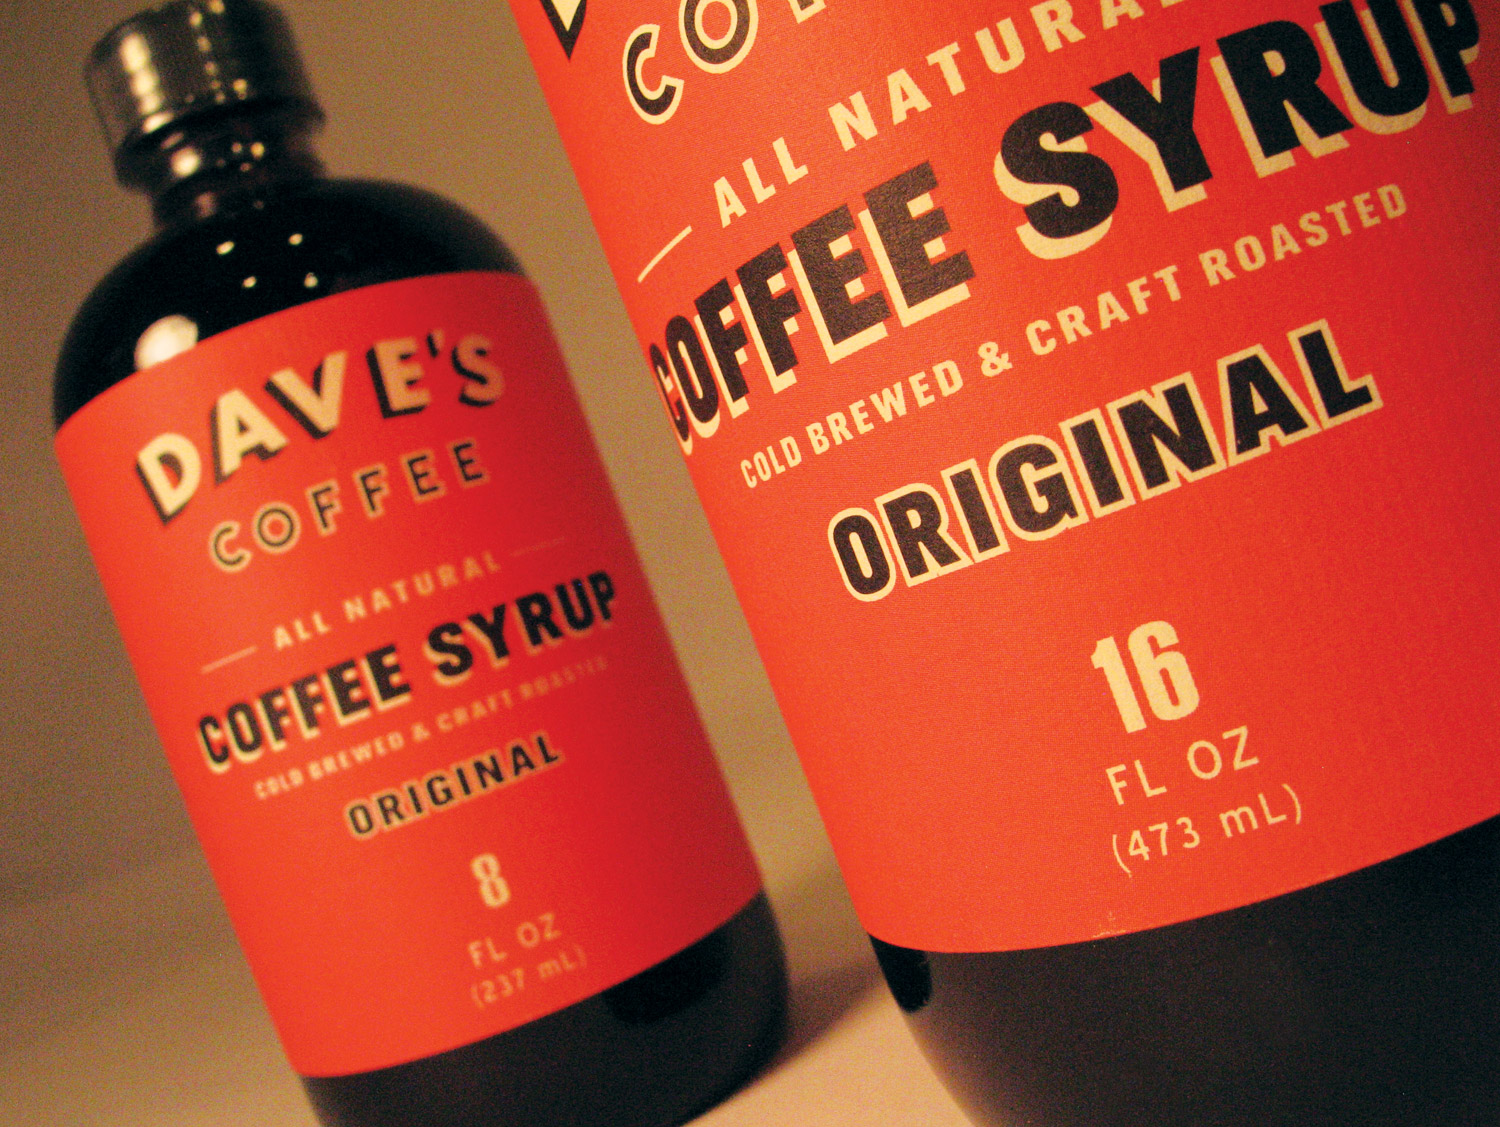 Daves-Coffee-Syrup-Packaging-016.jpg